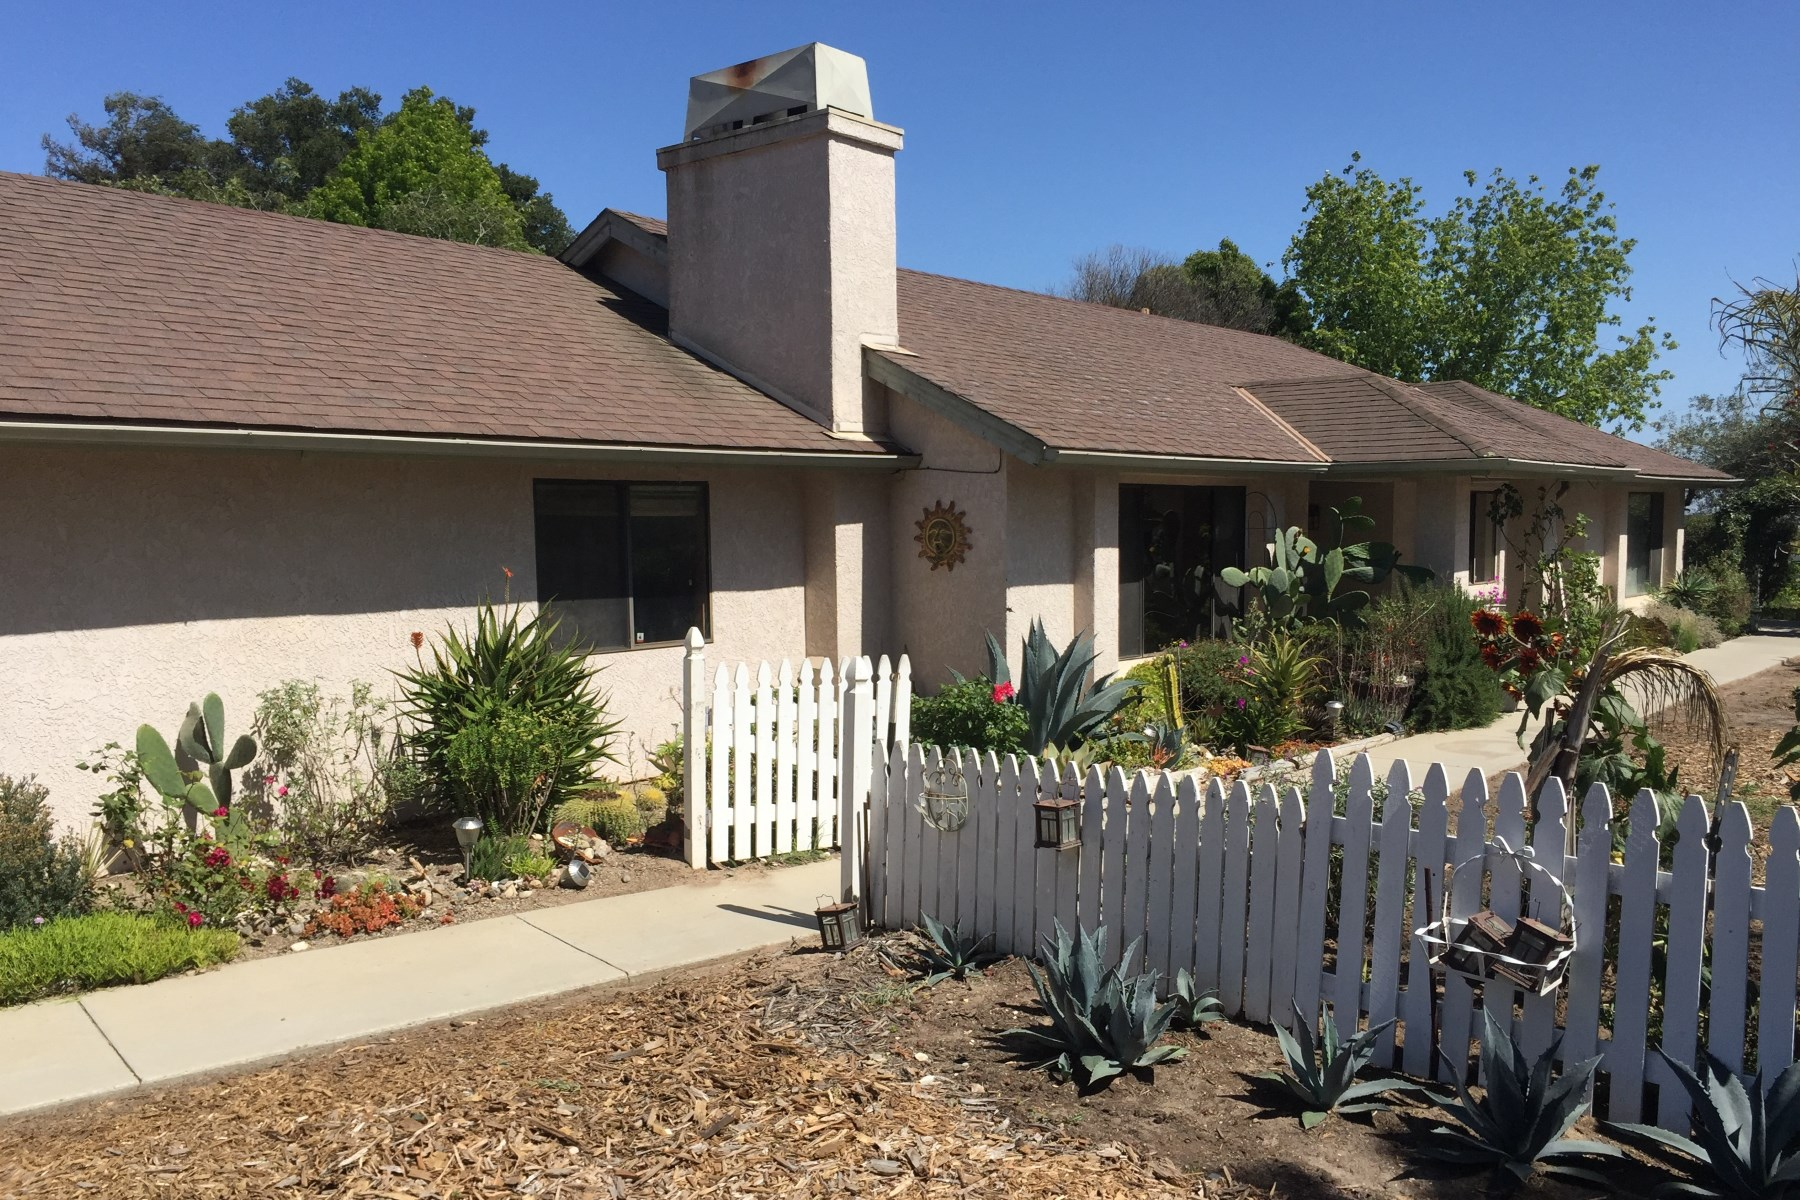 Single Family Home for Sale at Great Investment Opportunity 1565 Verano Way Nipomo, California, 93444 United States